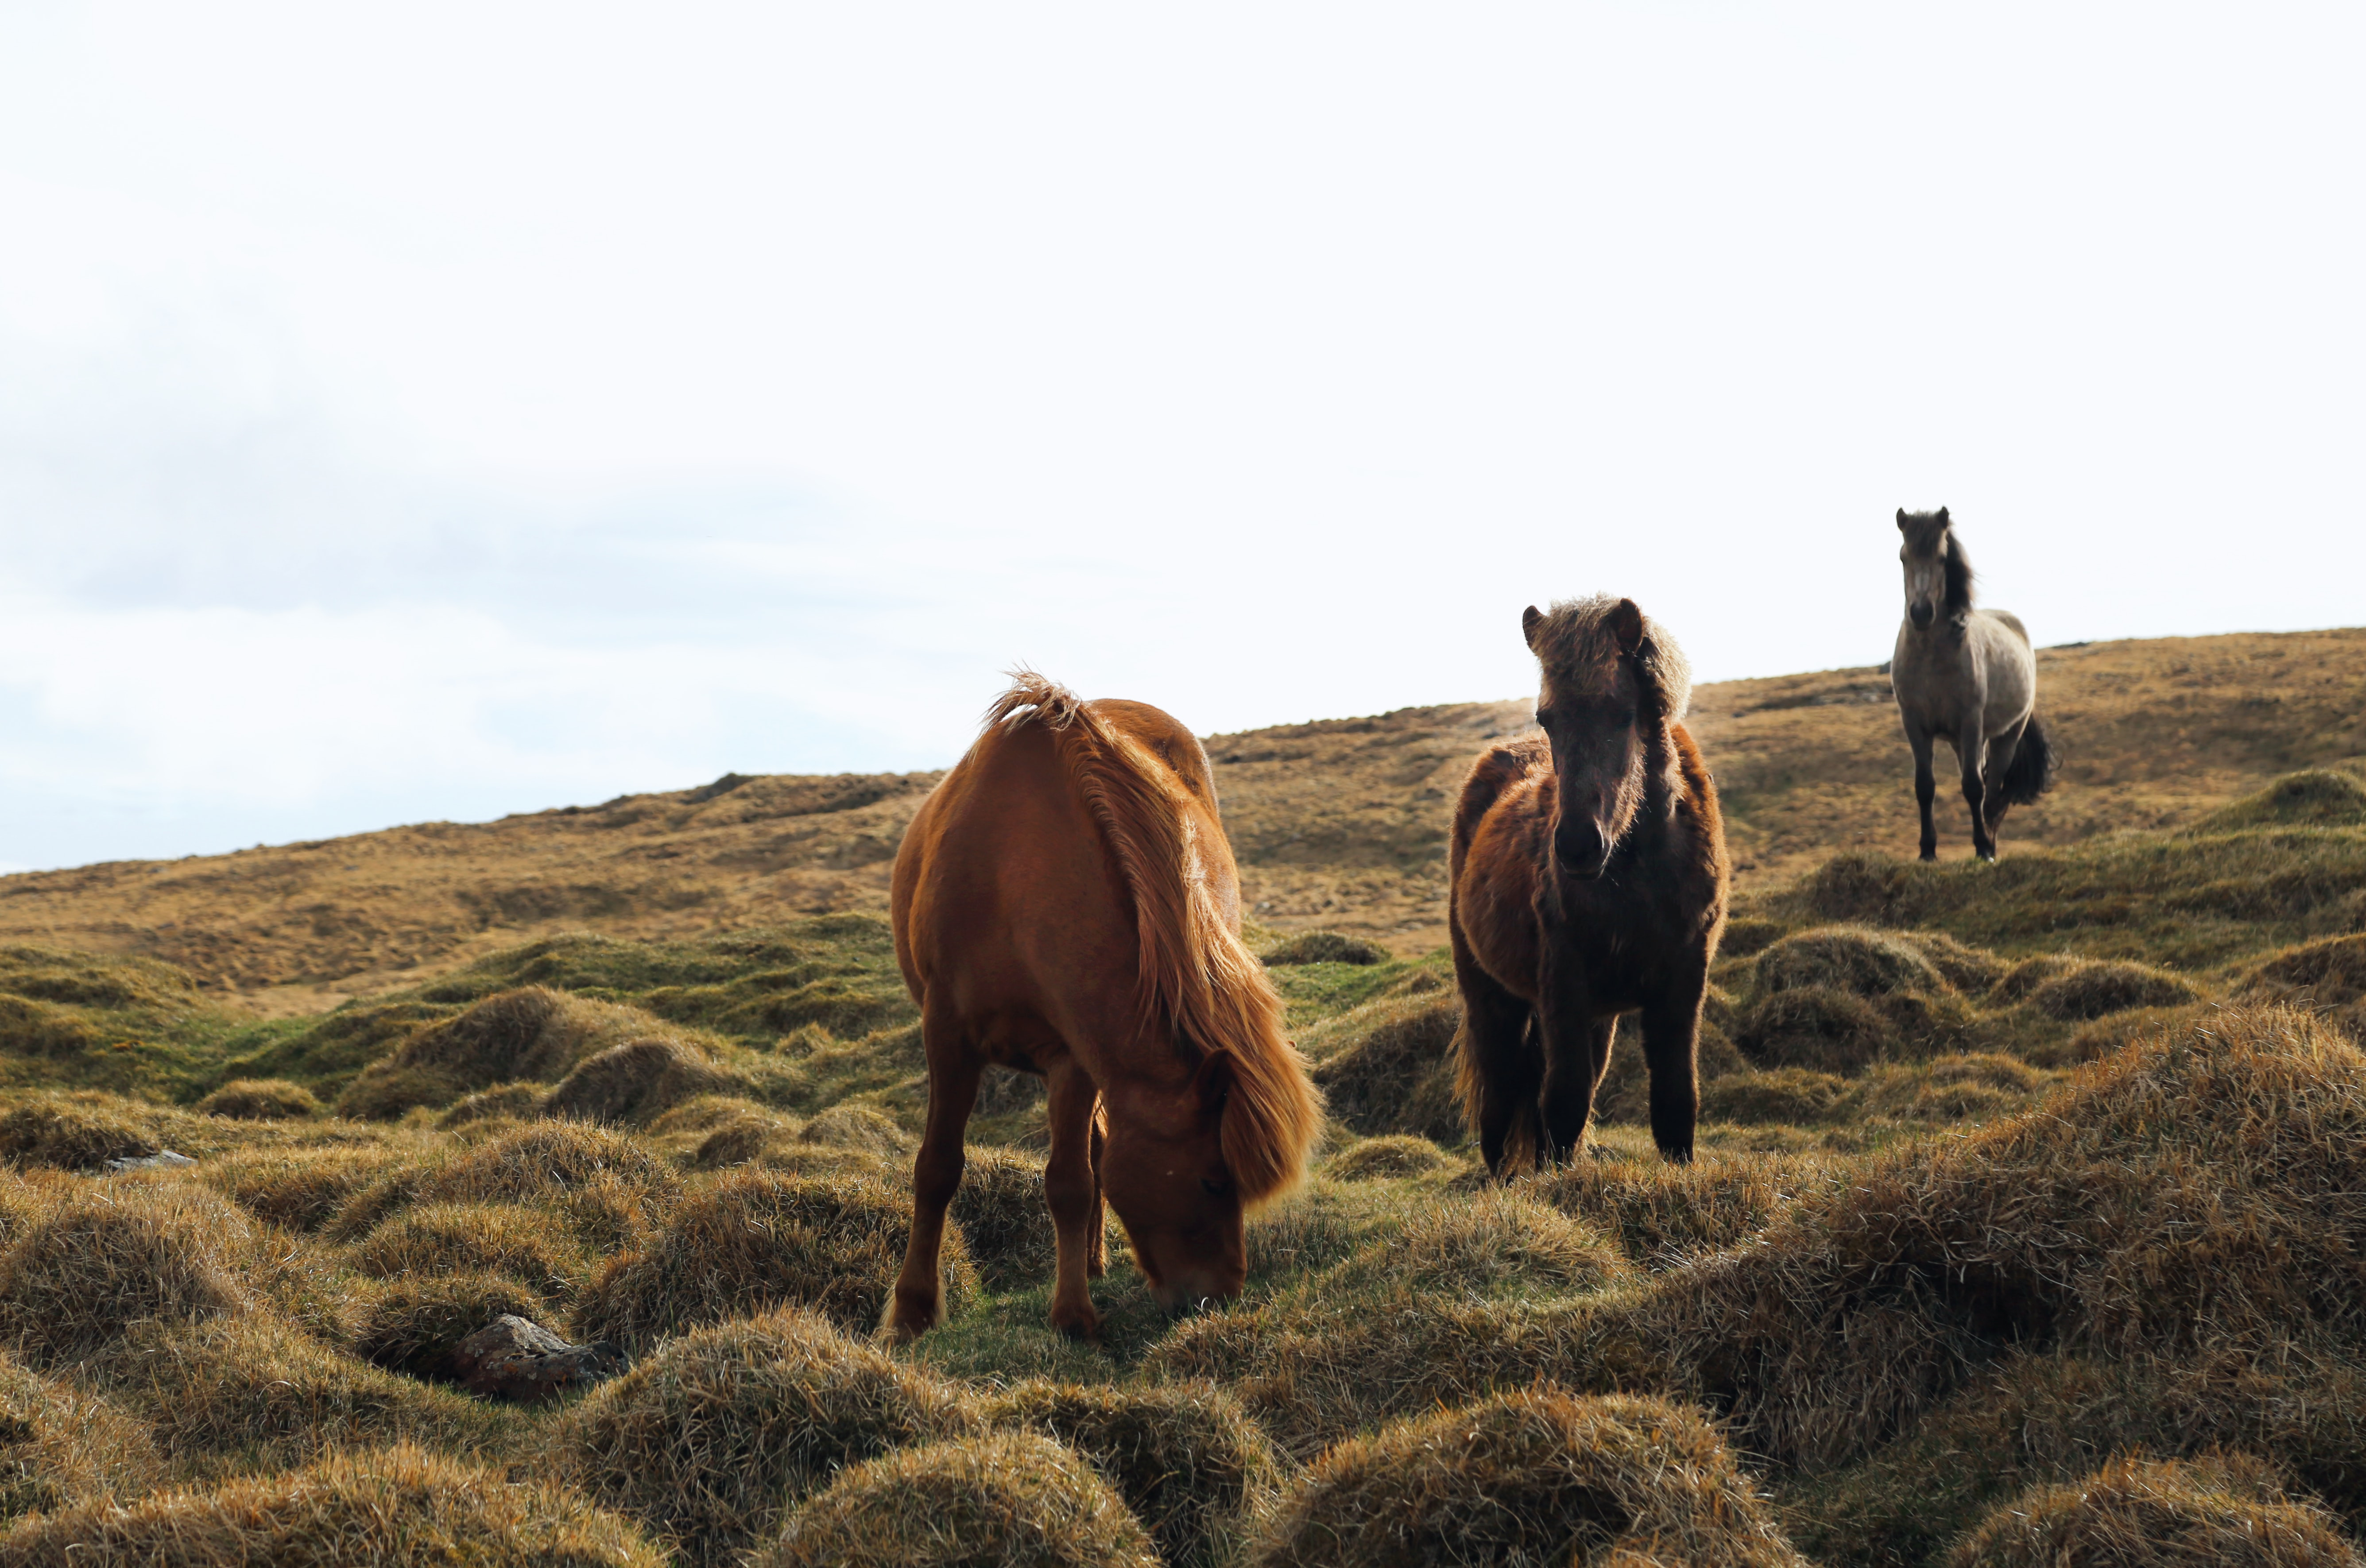 Three horses grazing on the side of a hill in Iceland